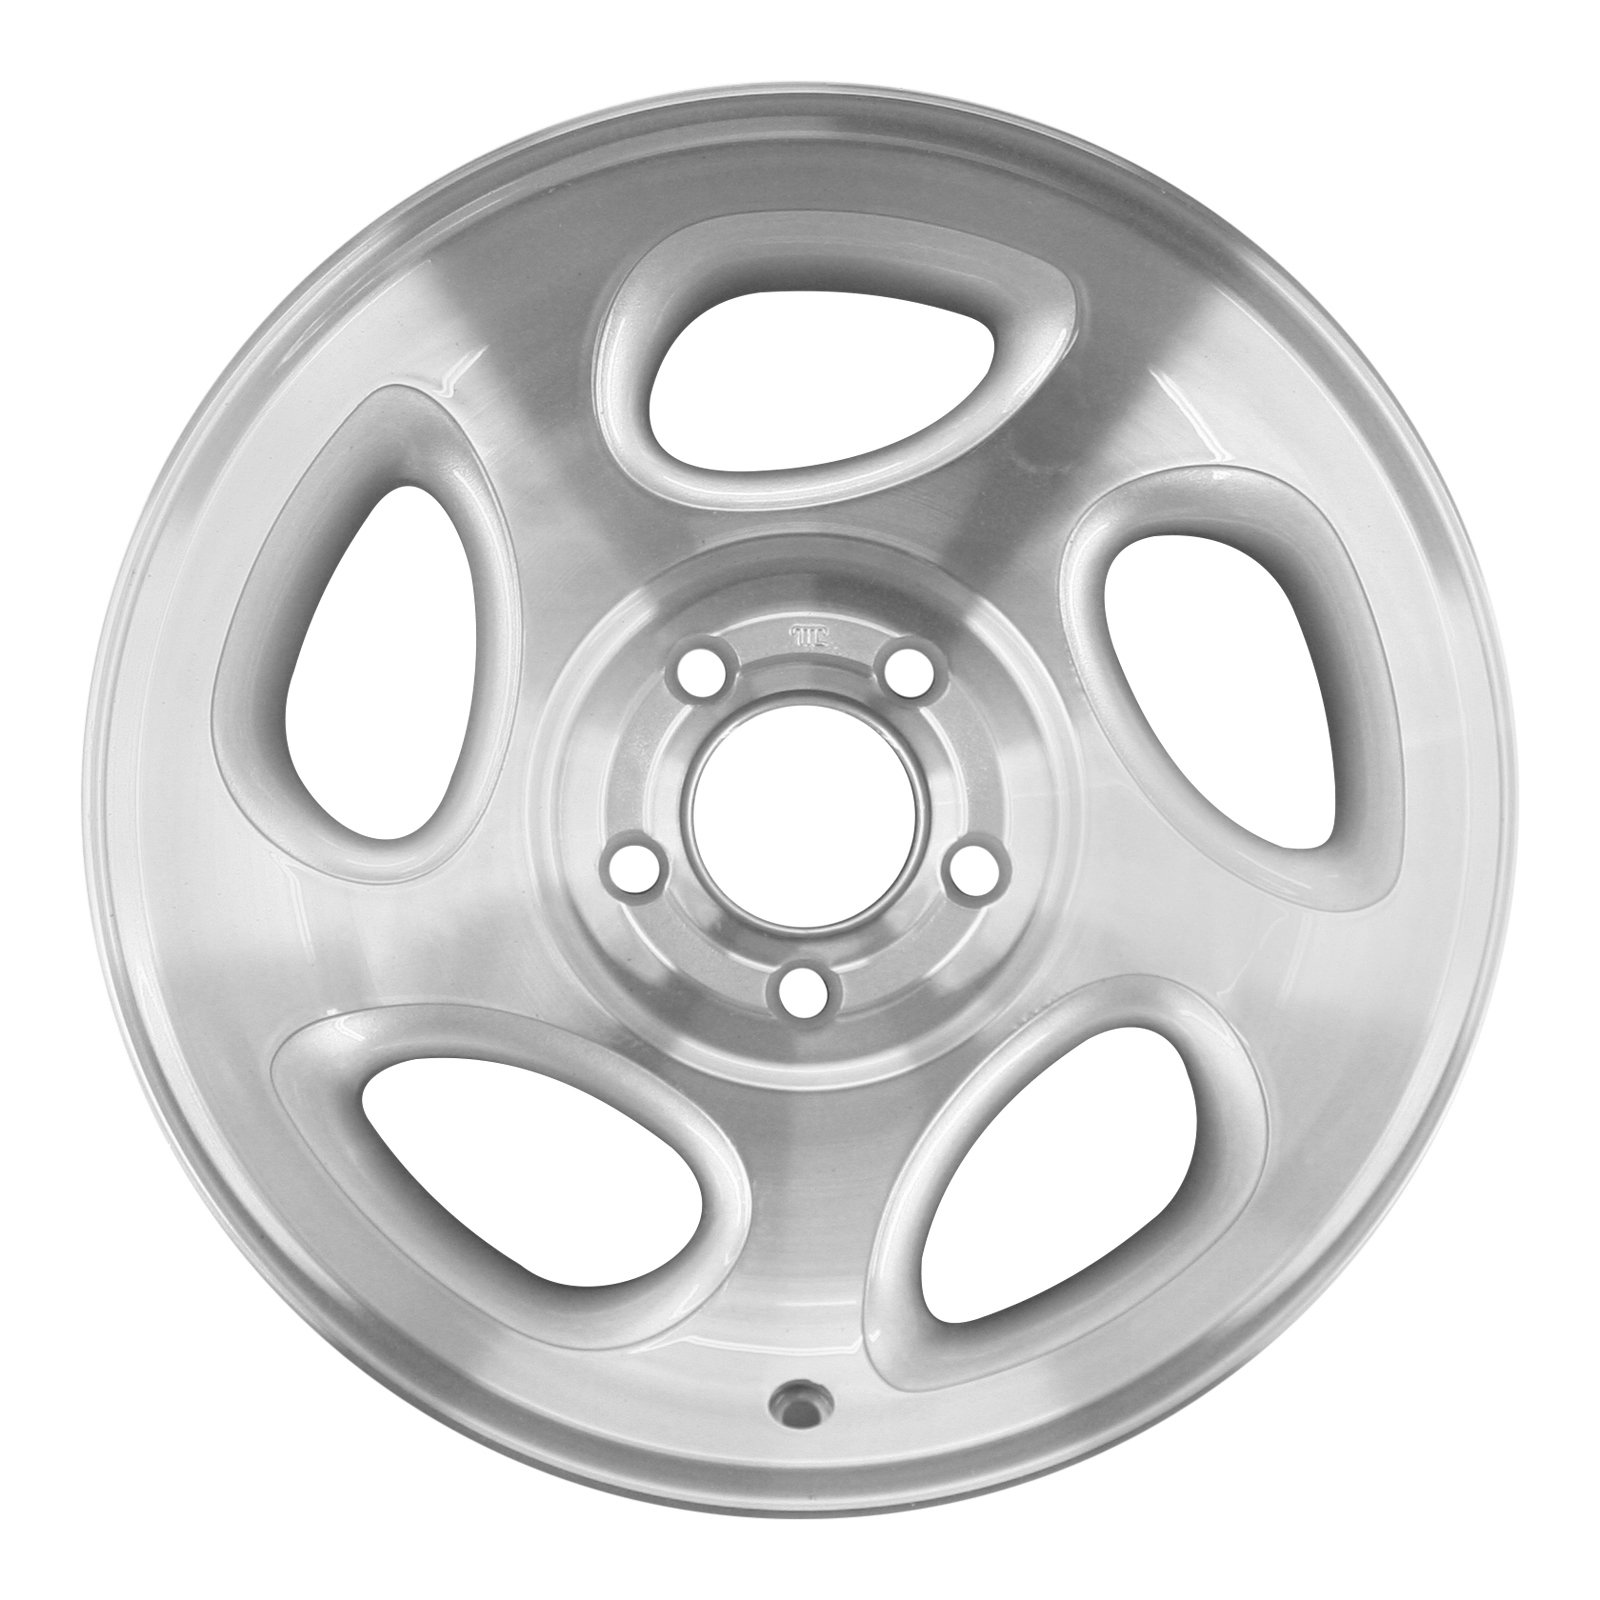 New 16'' Replacement Rim for Ford Explorer Ranger Sport Trac 1998-2005 Wheel 3293